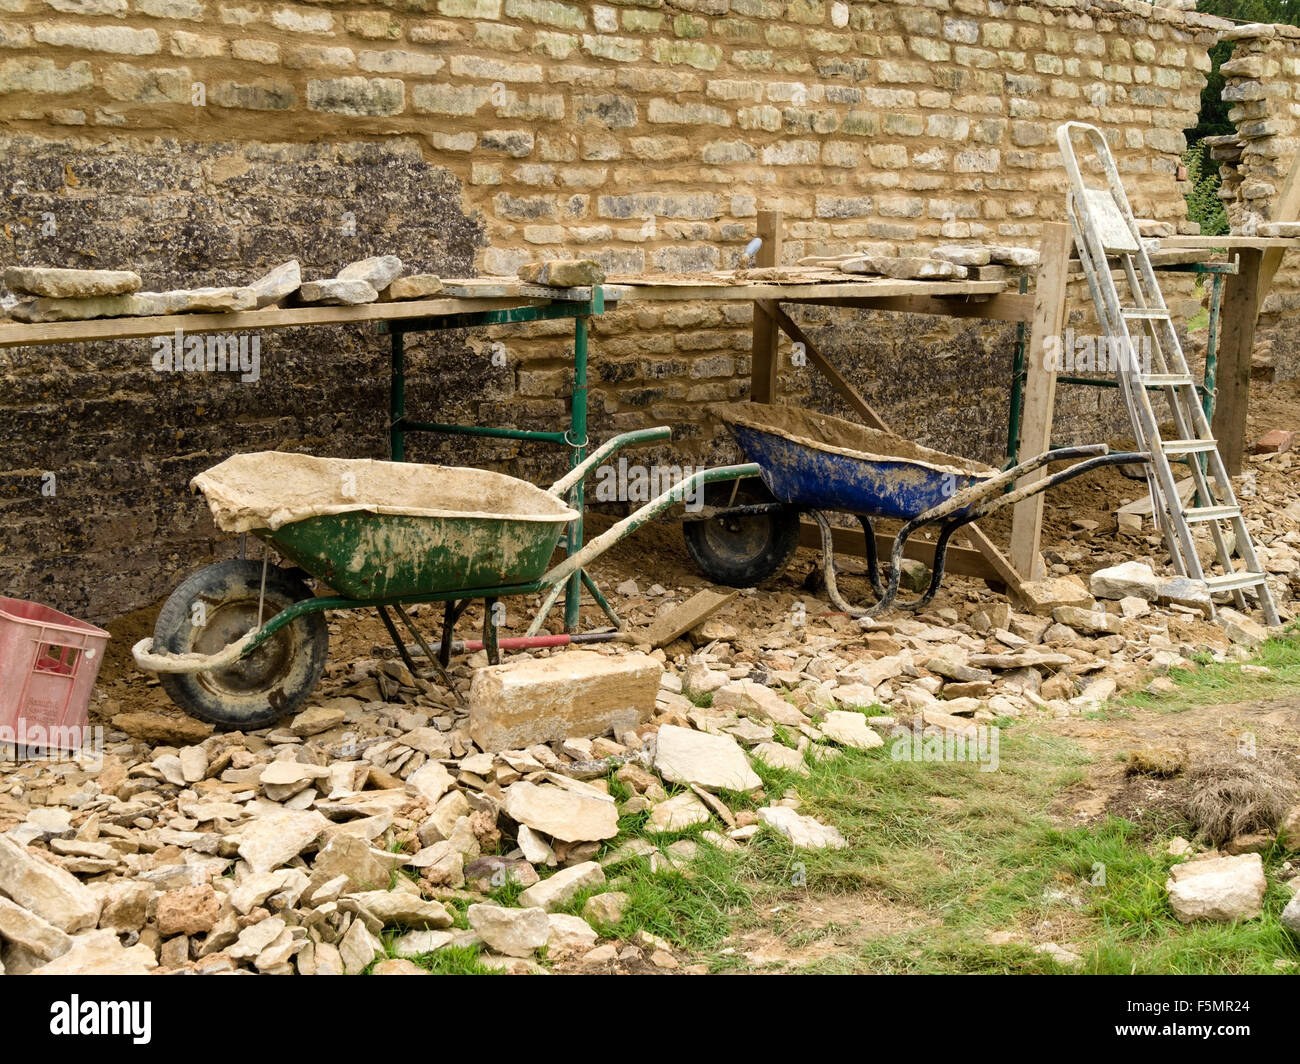 Old natural, limestone garden wall renovation and repair with builder's tools, wheelbarrows, trestles, scaffolding - Stock Image